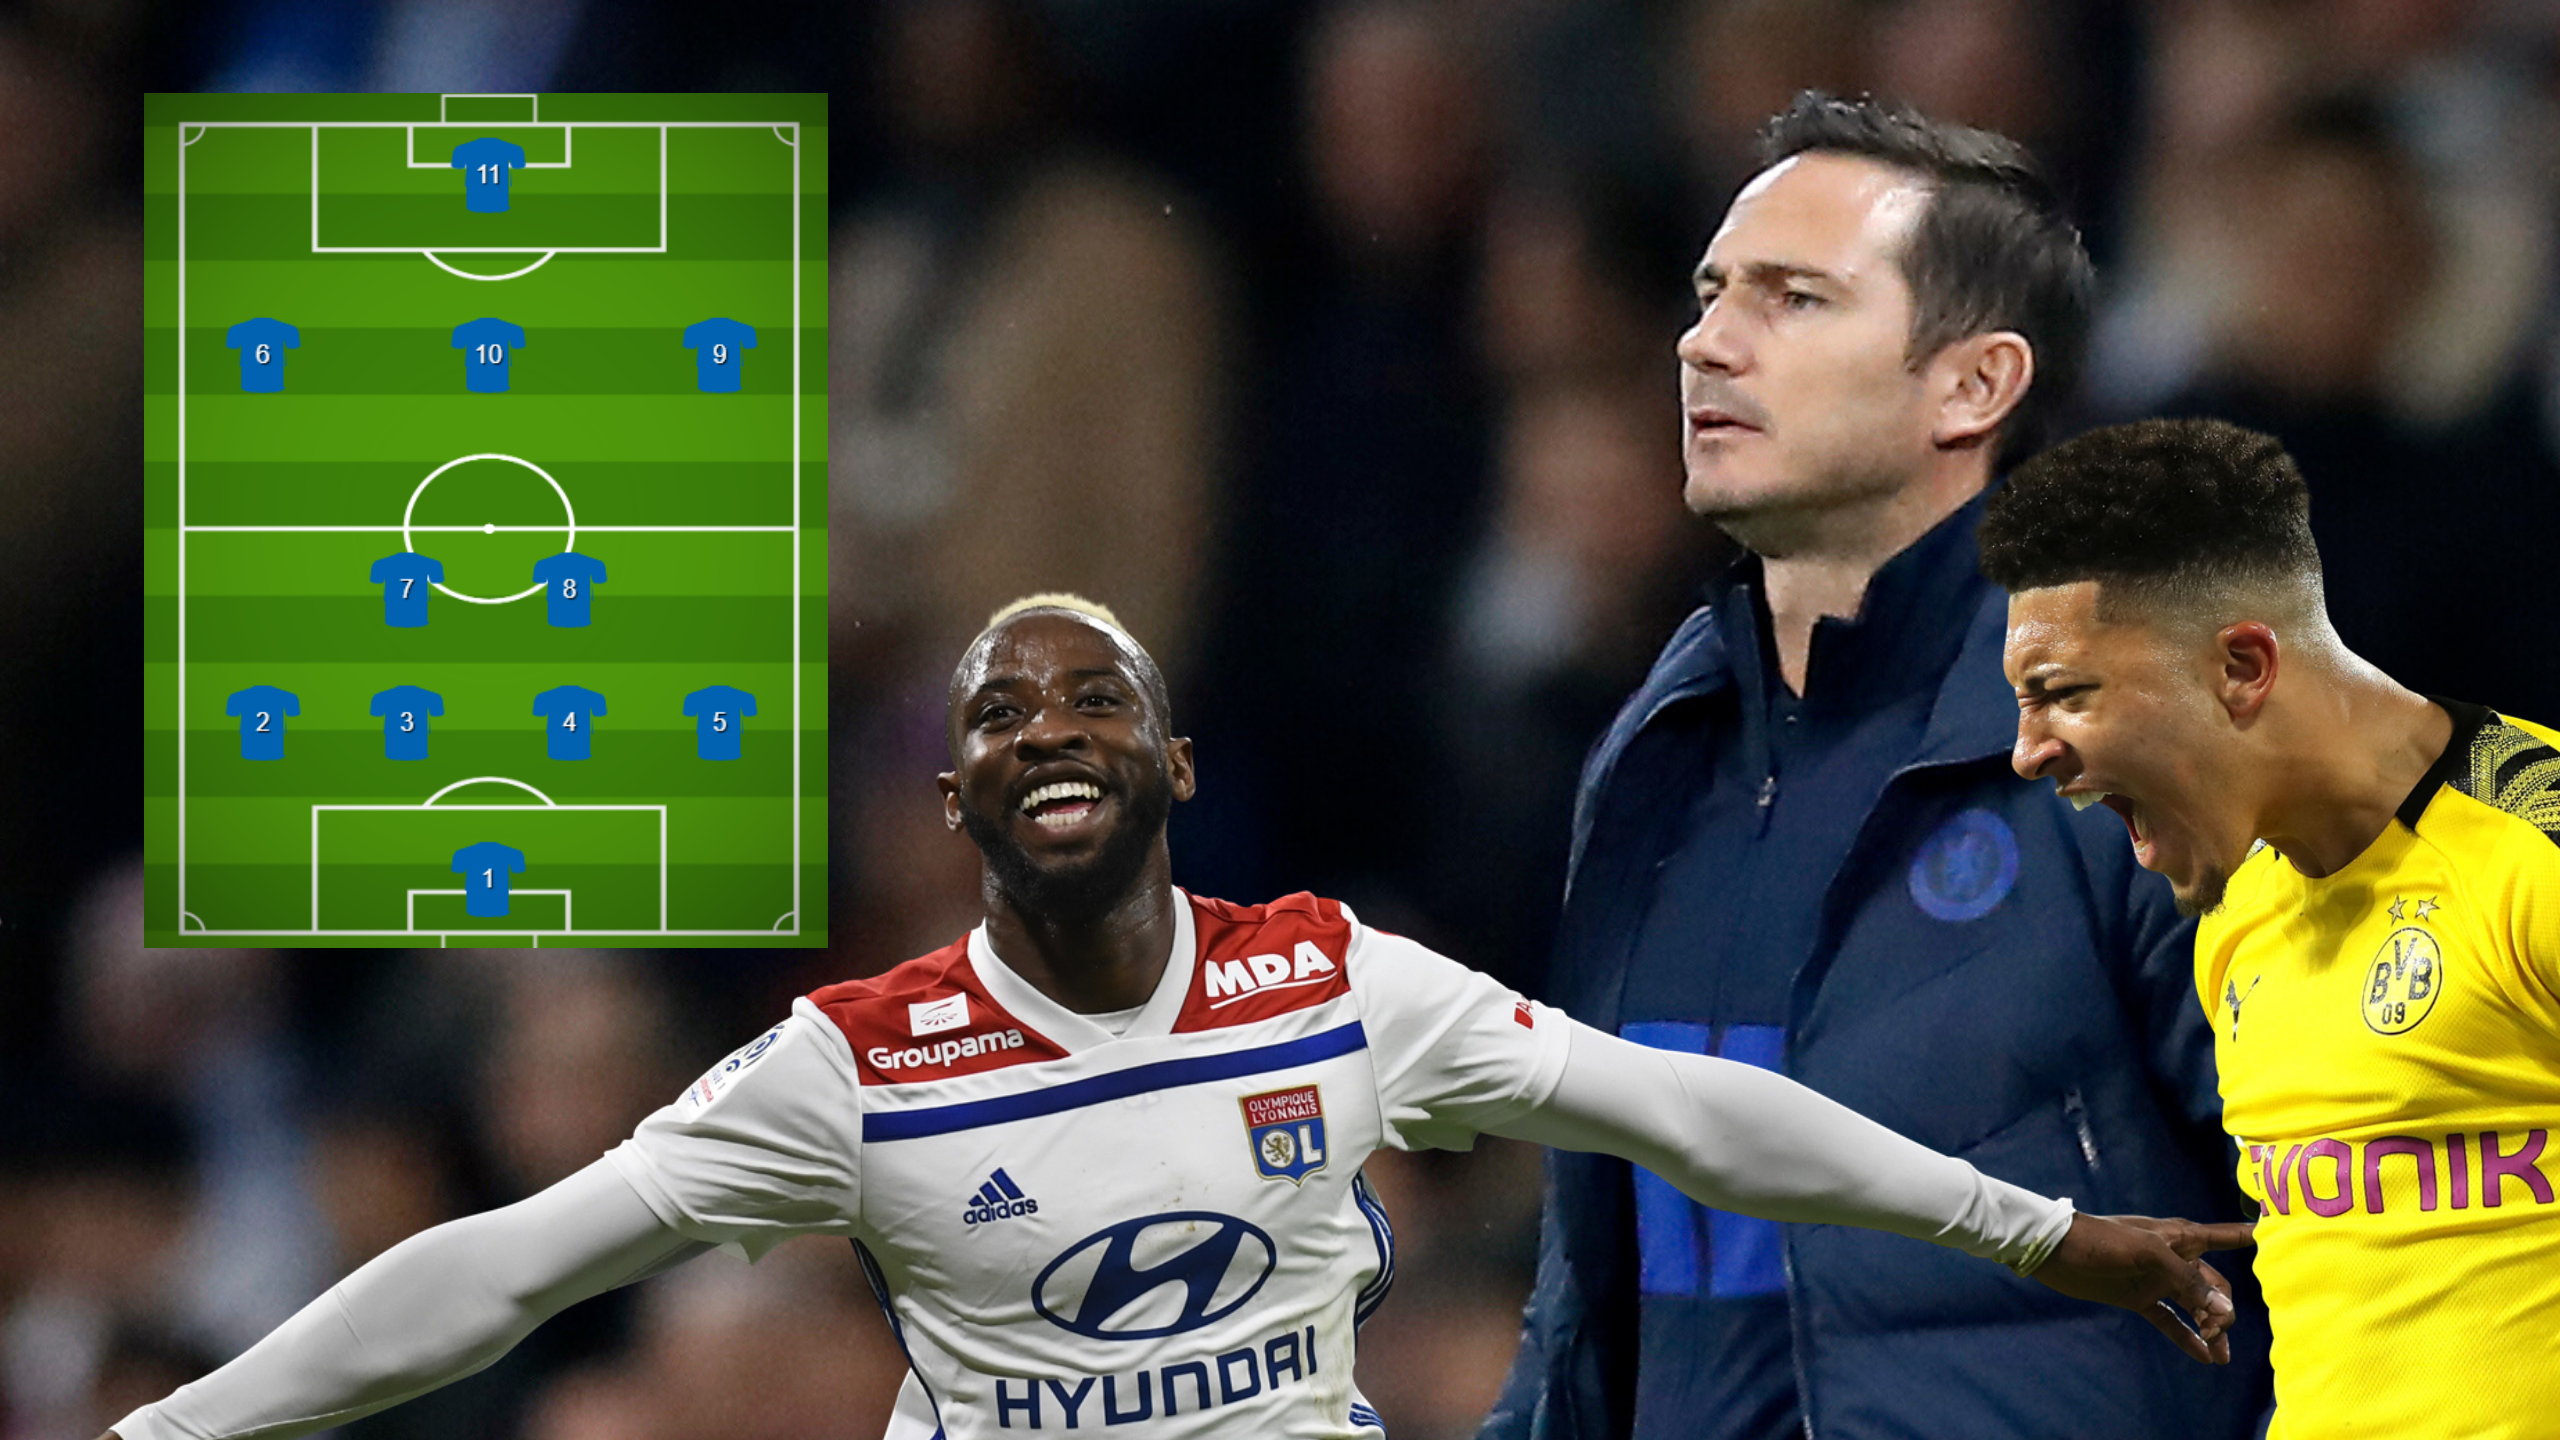 Chelsea S Potential Starting Xi For Next Season Could Challenge For 2020 21 Premier League Title Sportbible